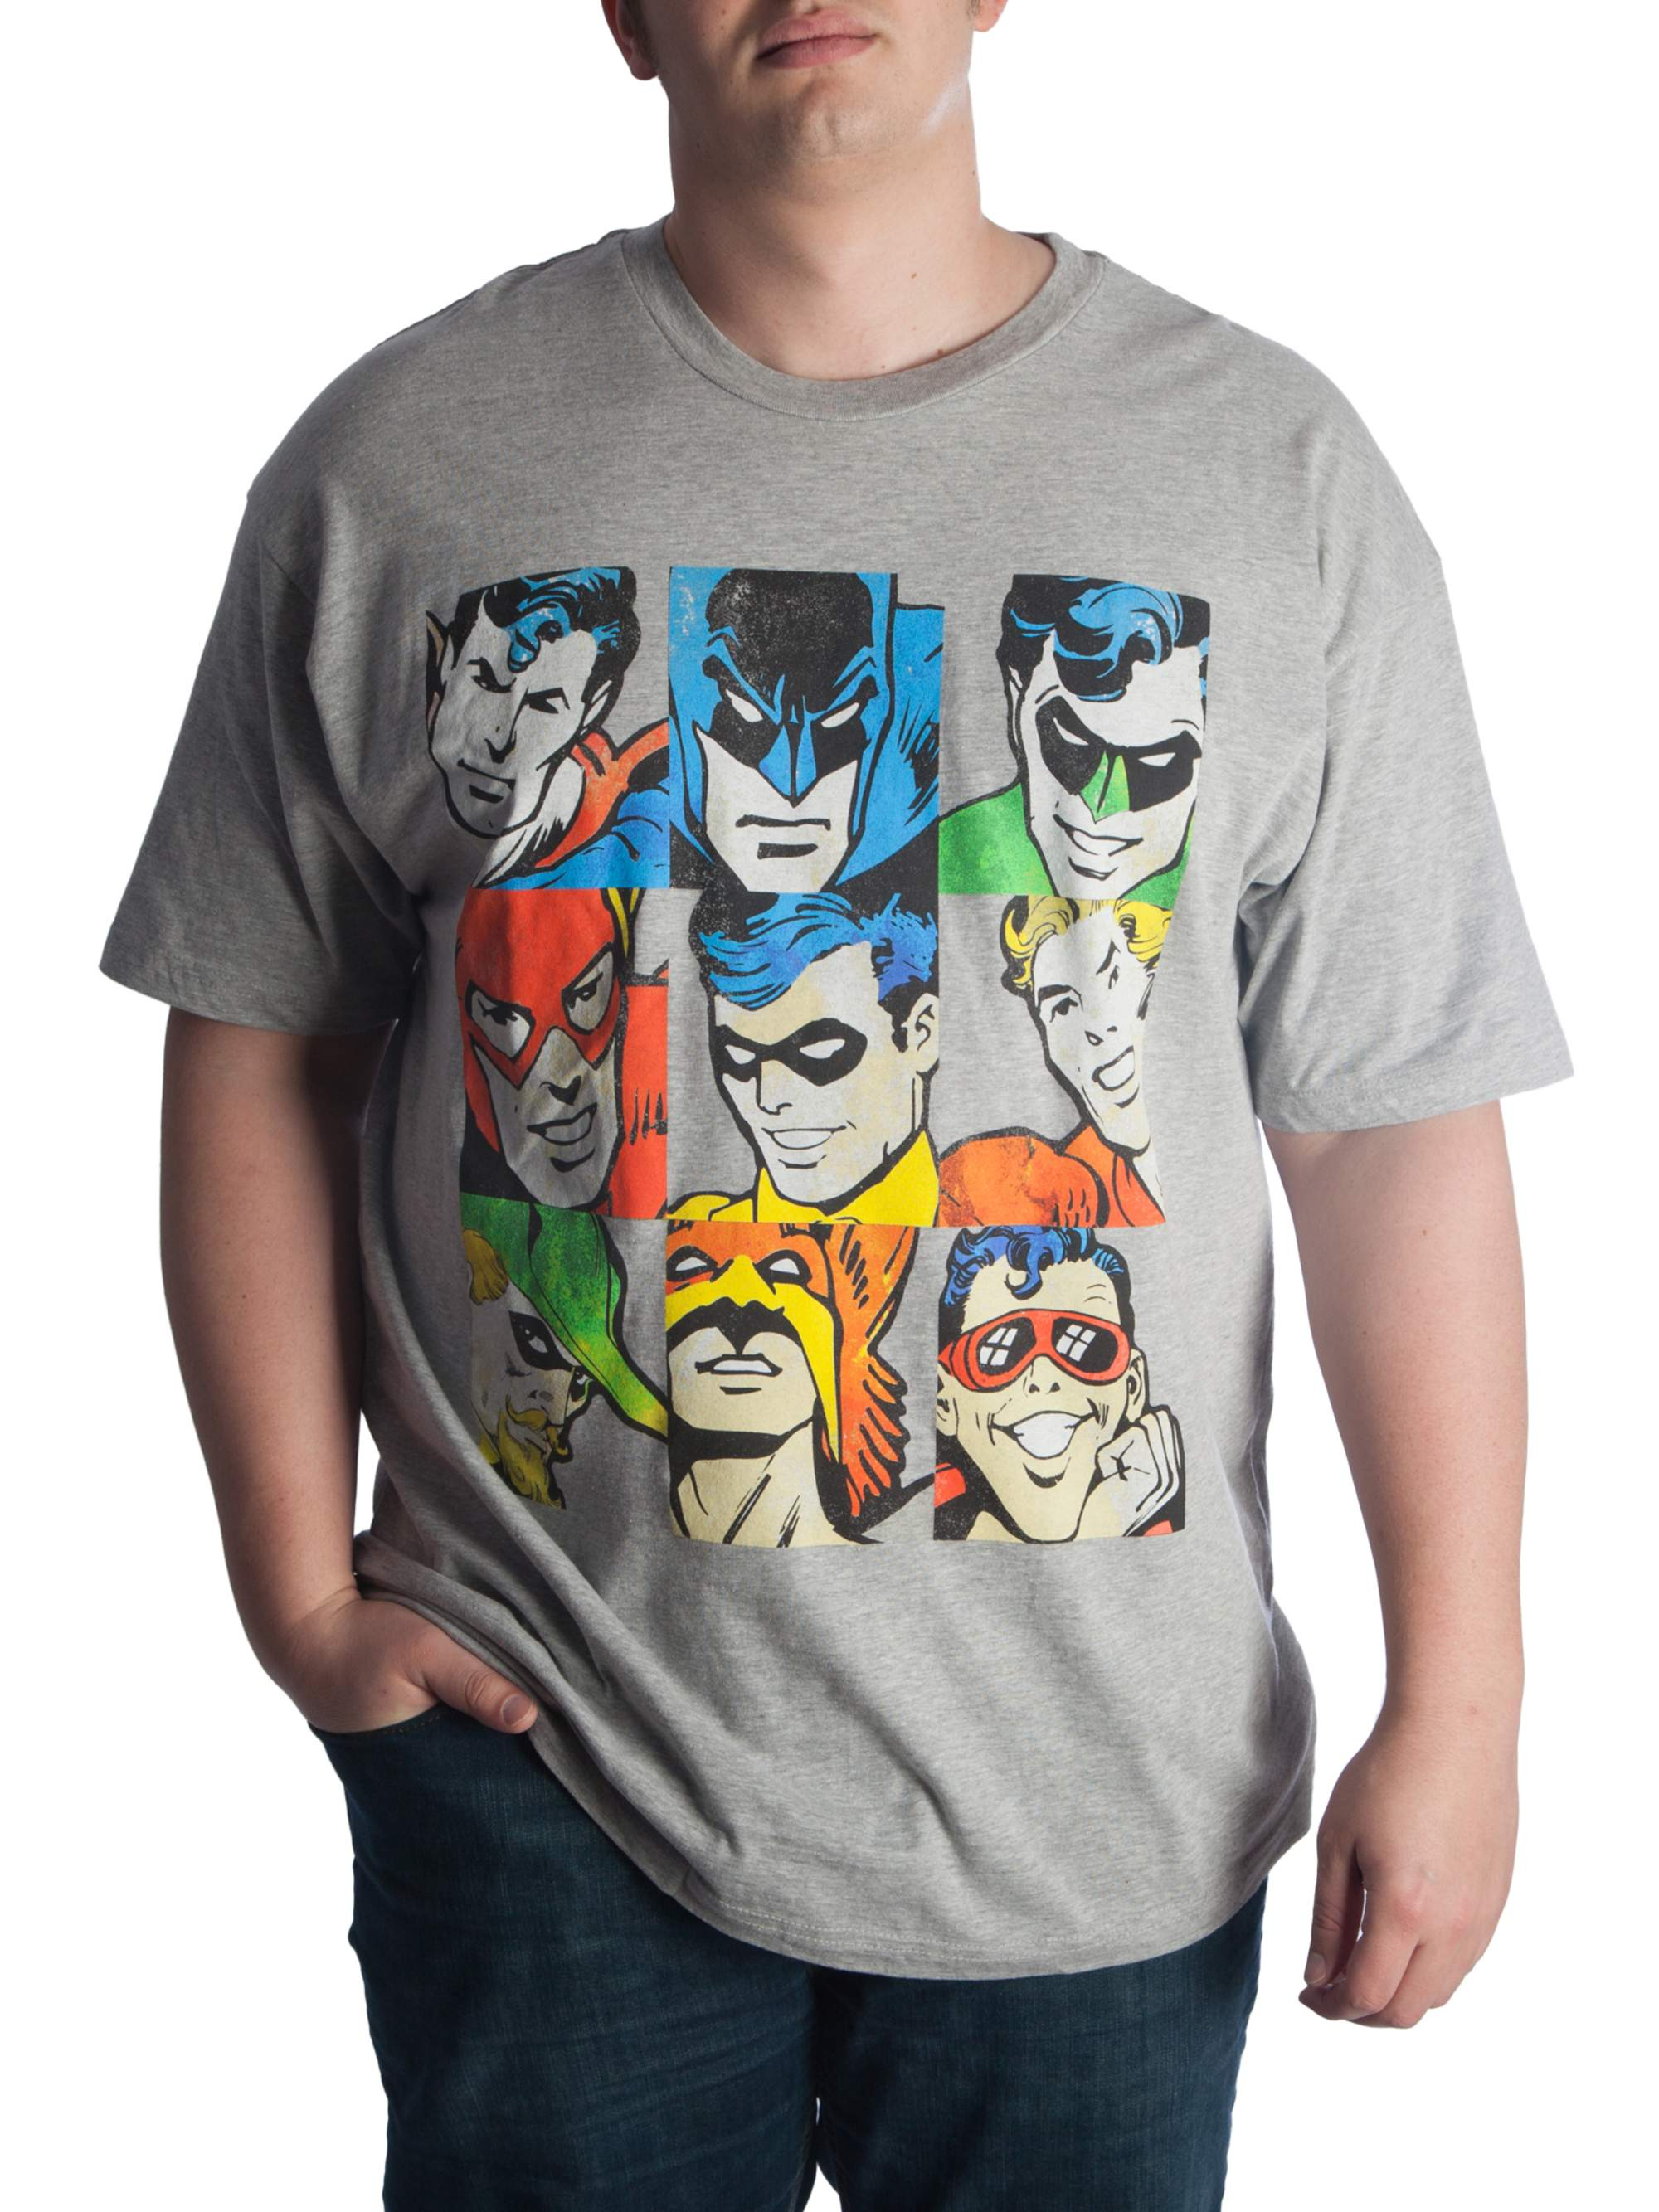 Dc Comics Big Men's Classic Justice League Graphic T-Shirt, Up To 6XL